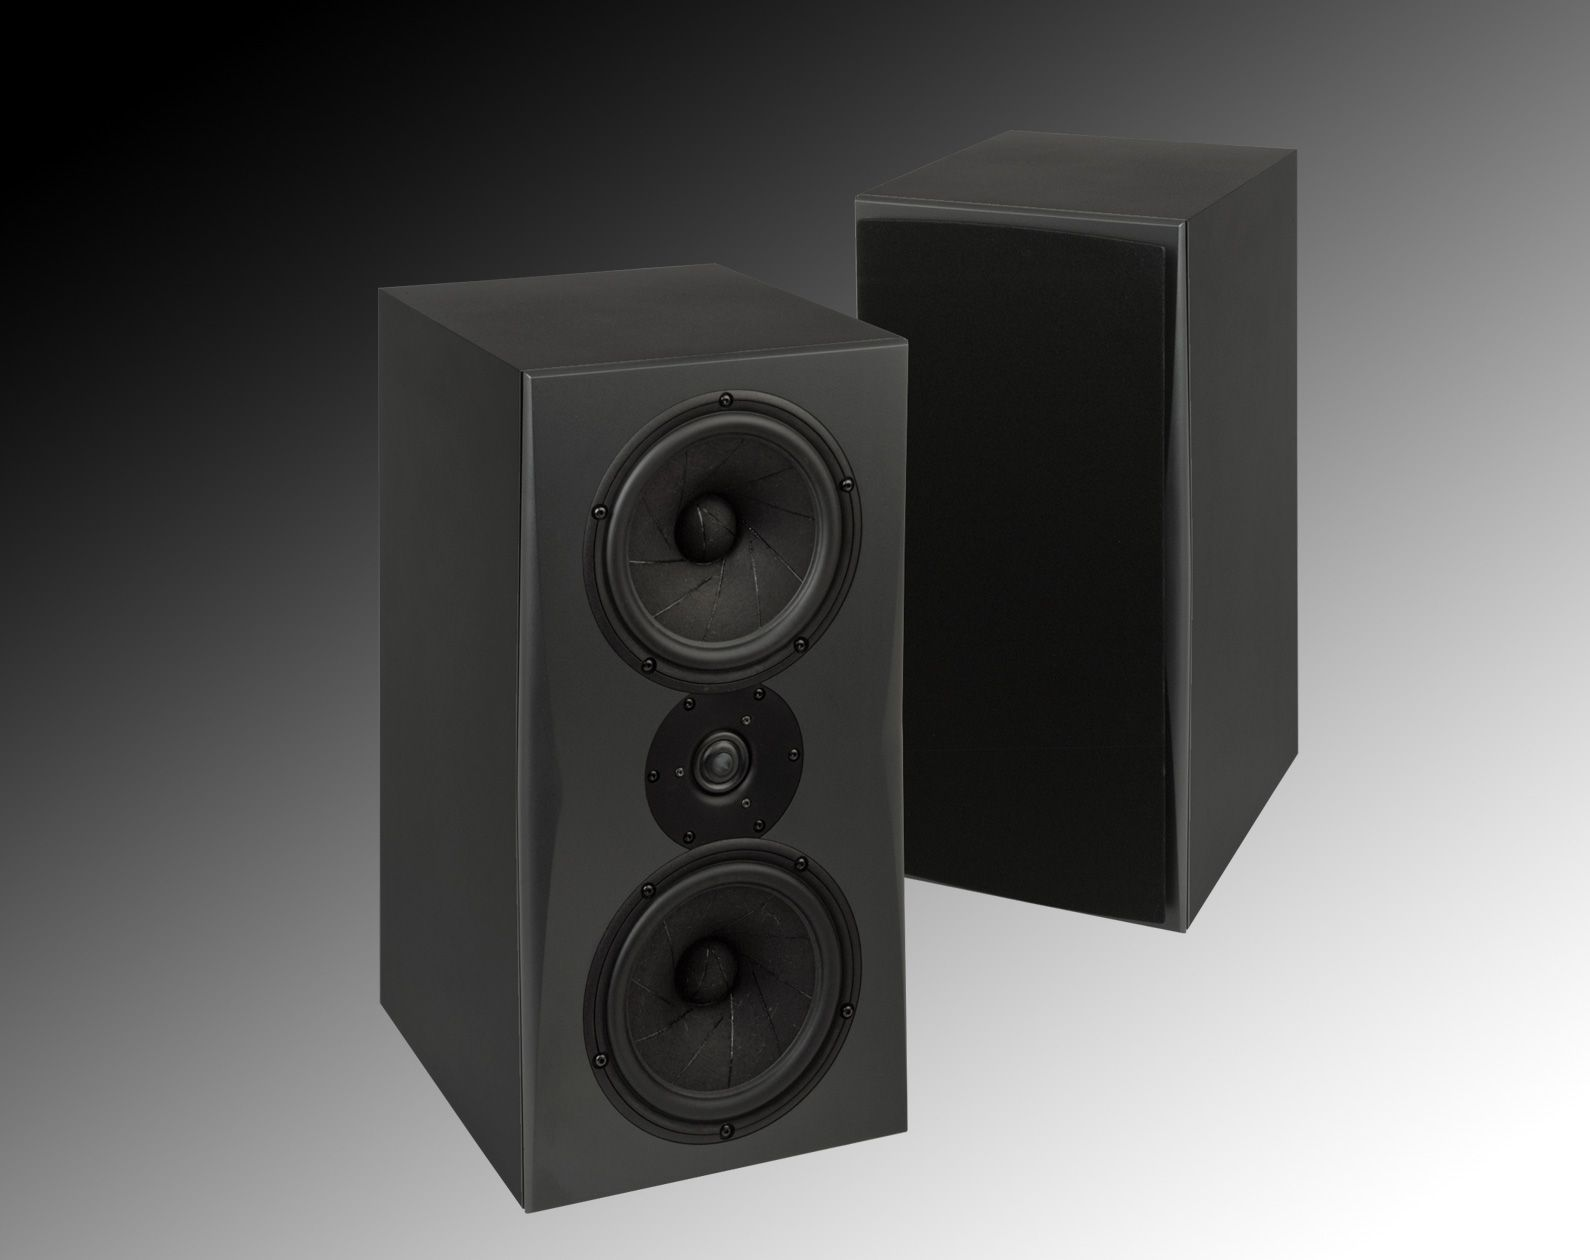 INROOM GOLD MONITOR triad speakers